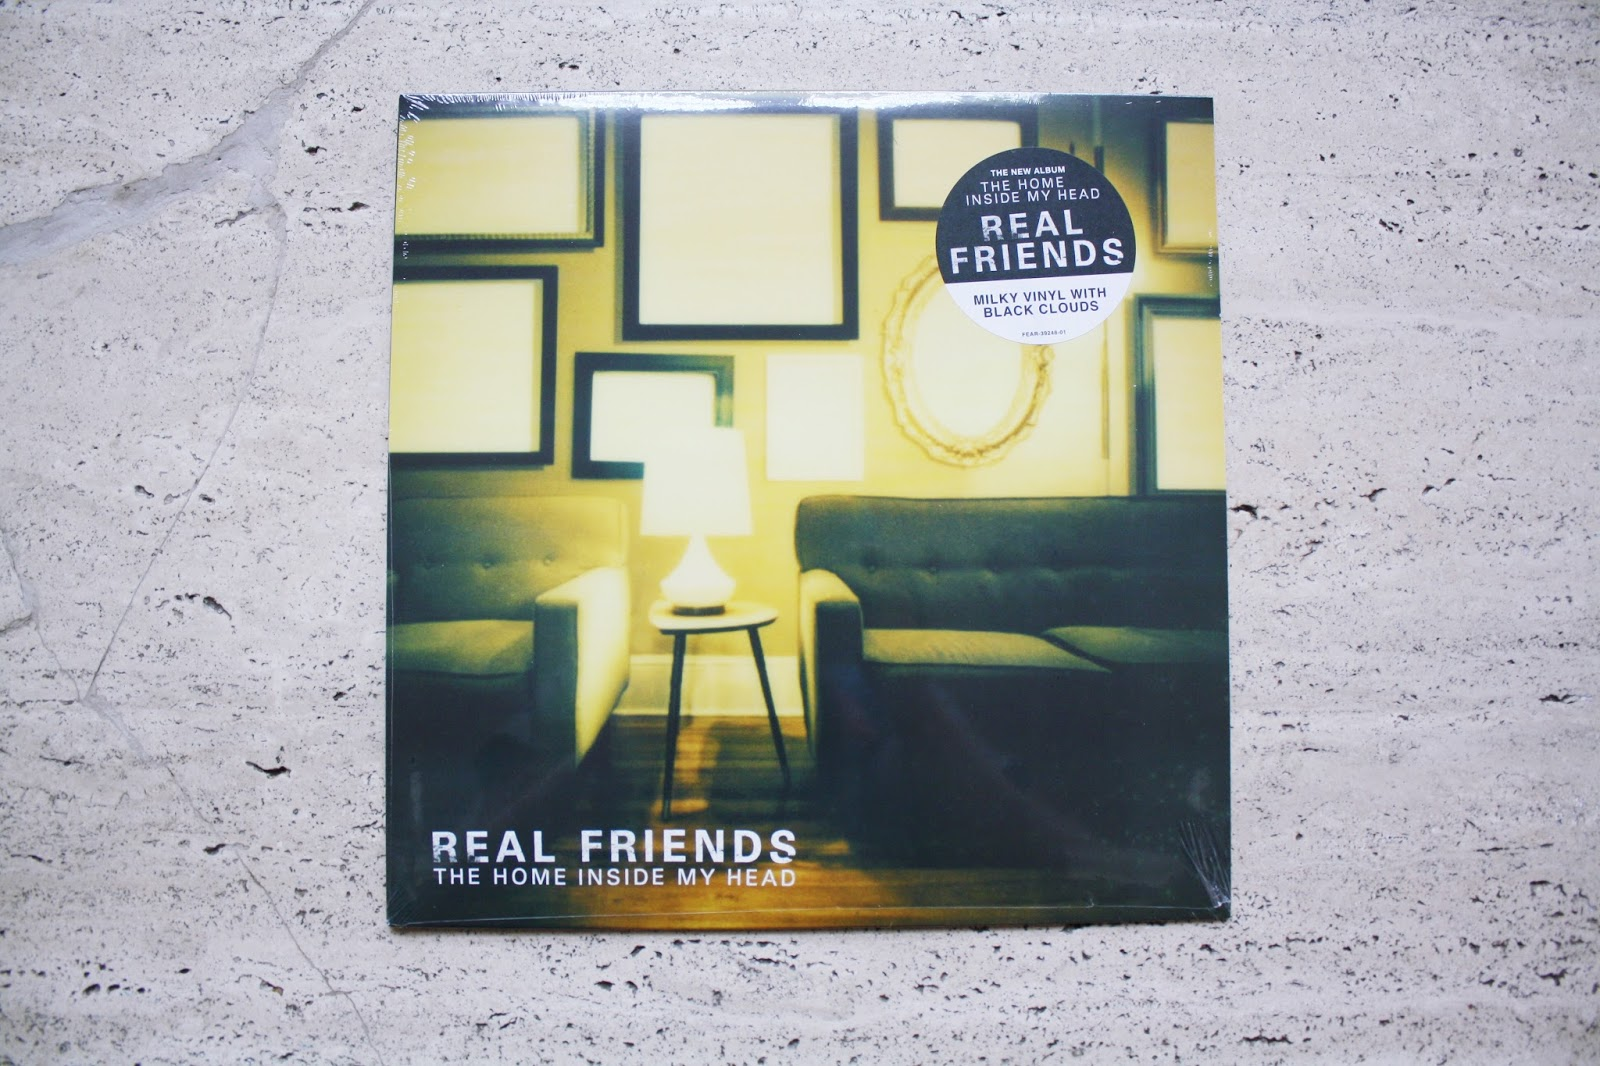 Real Friends The Home Inside My Head vinyl